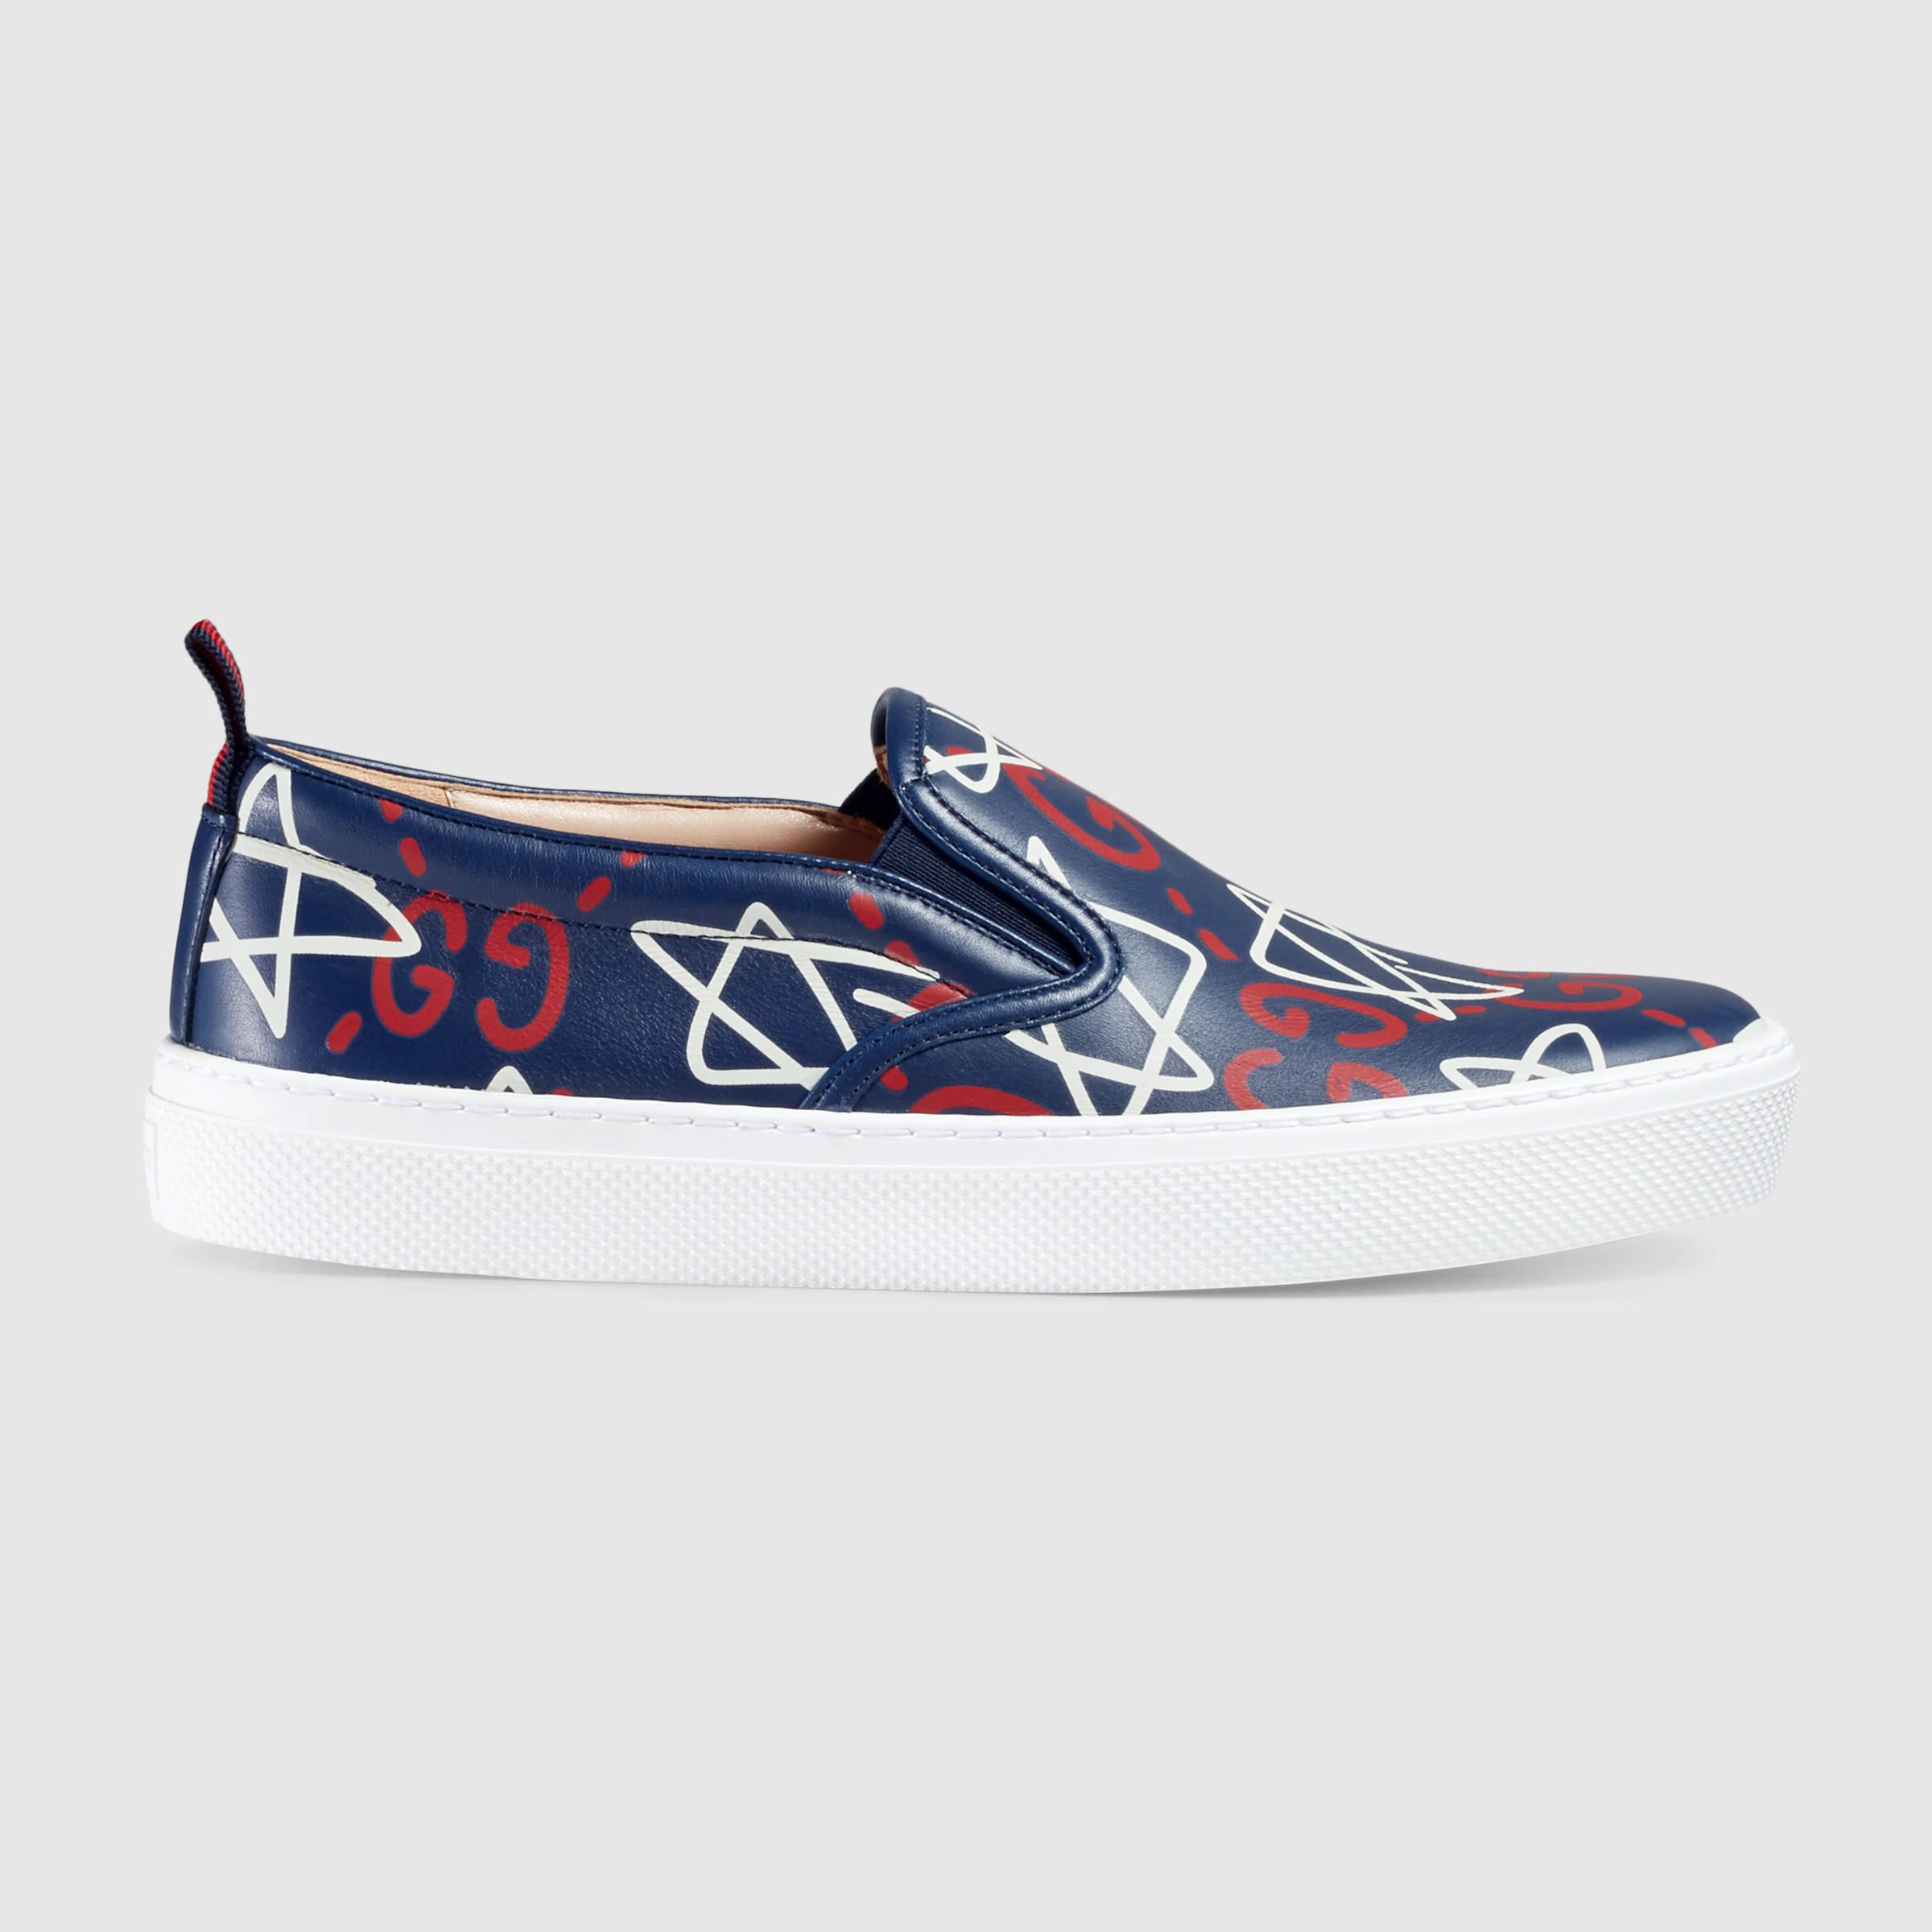 Gucci Ghost Print Leather Slip-on Sneaker